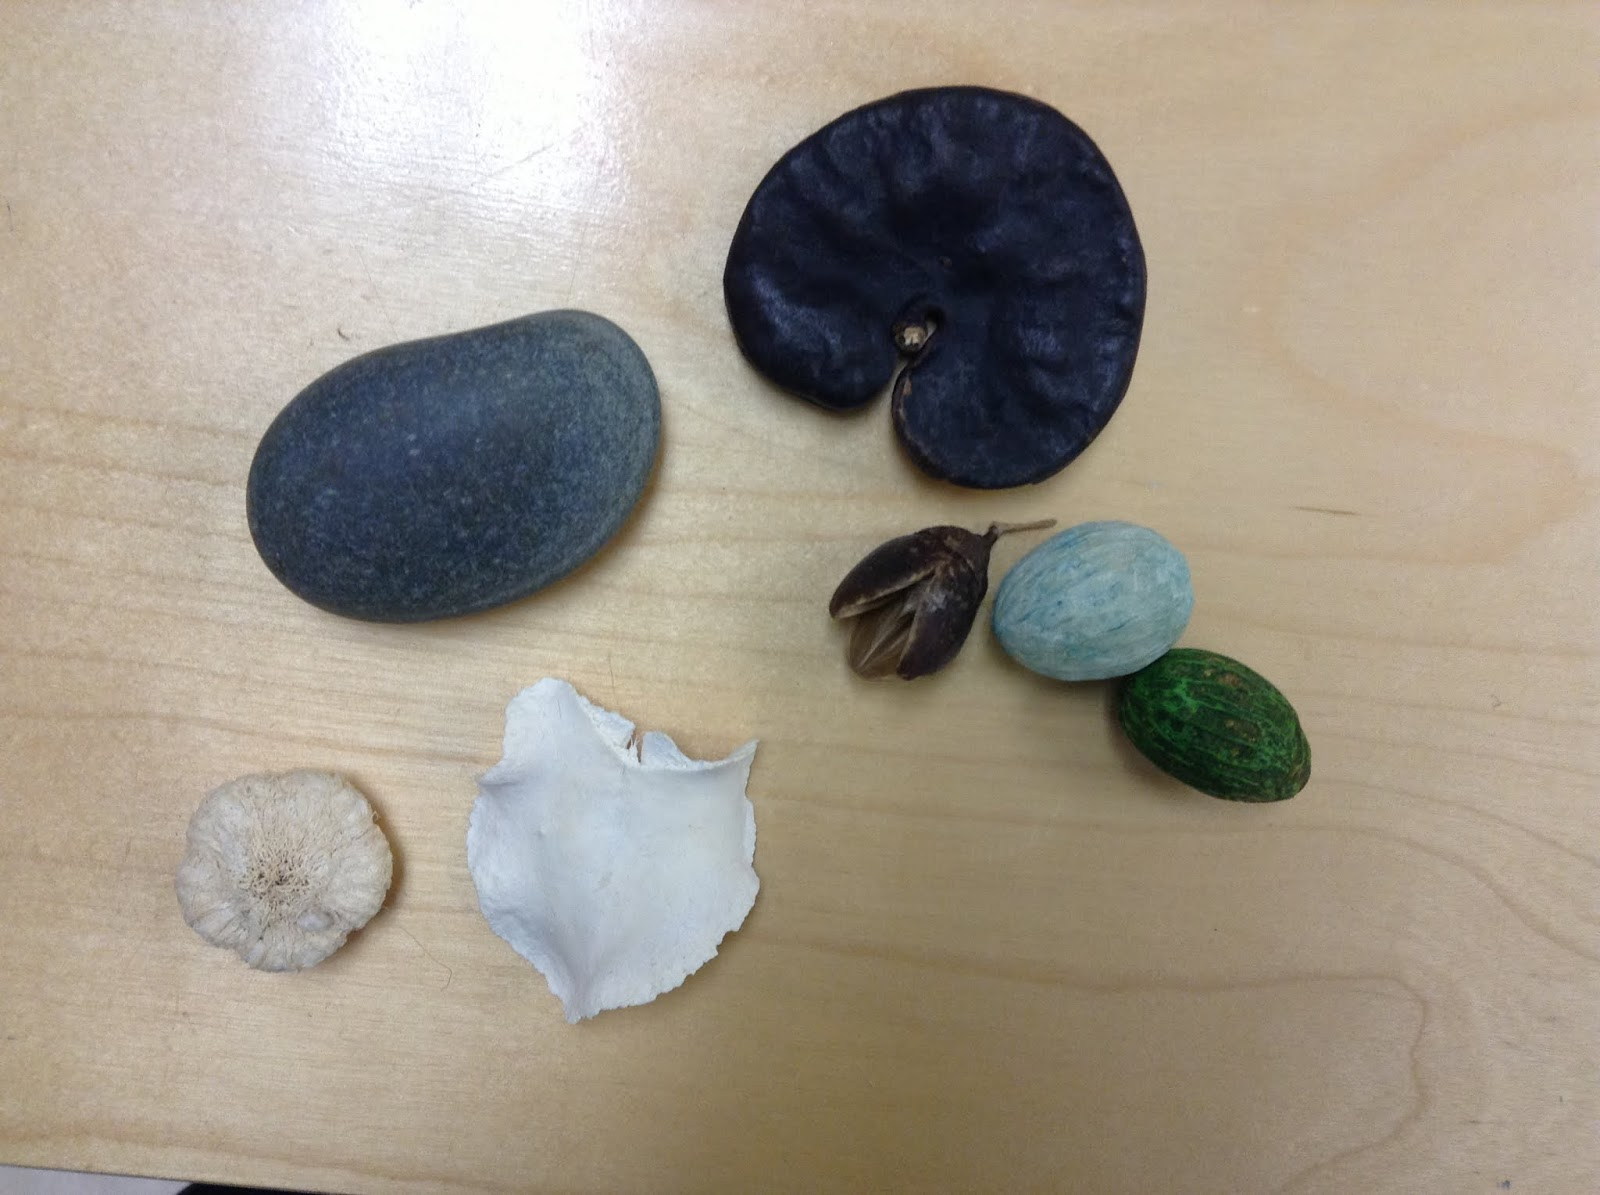 Seeds, dry flowers, rocks, seashell